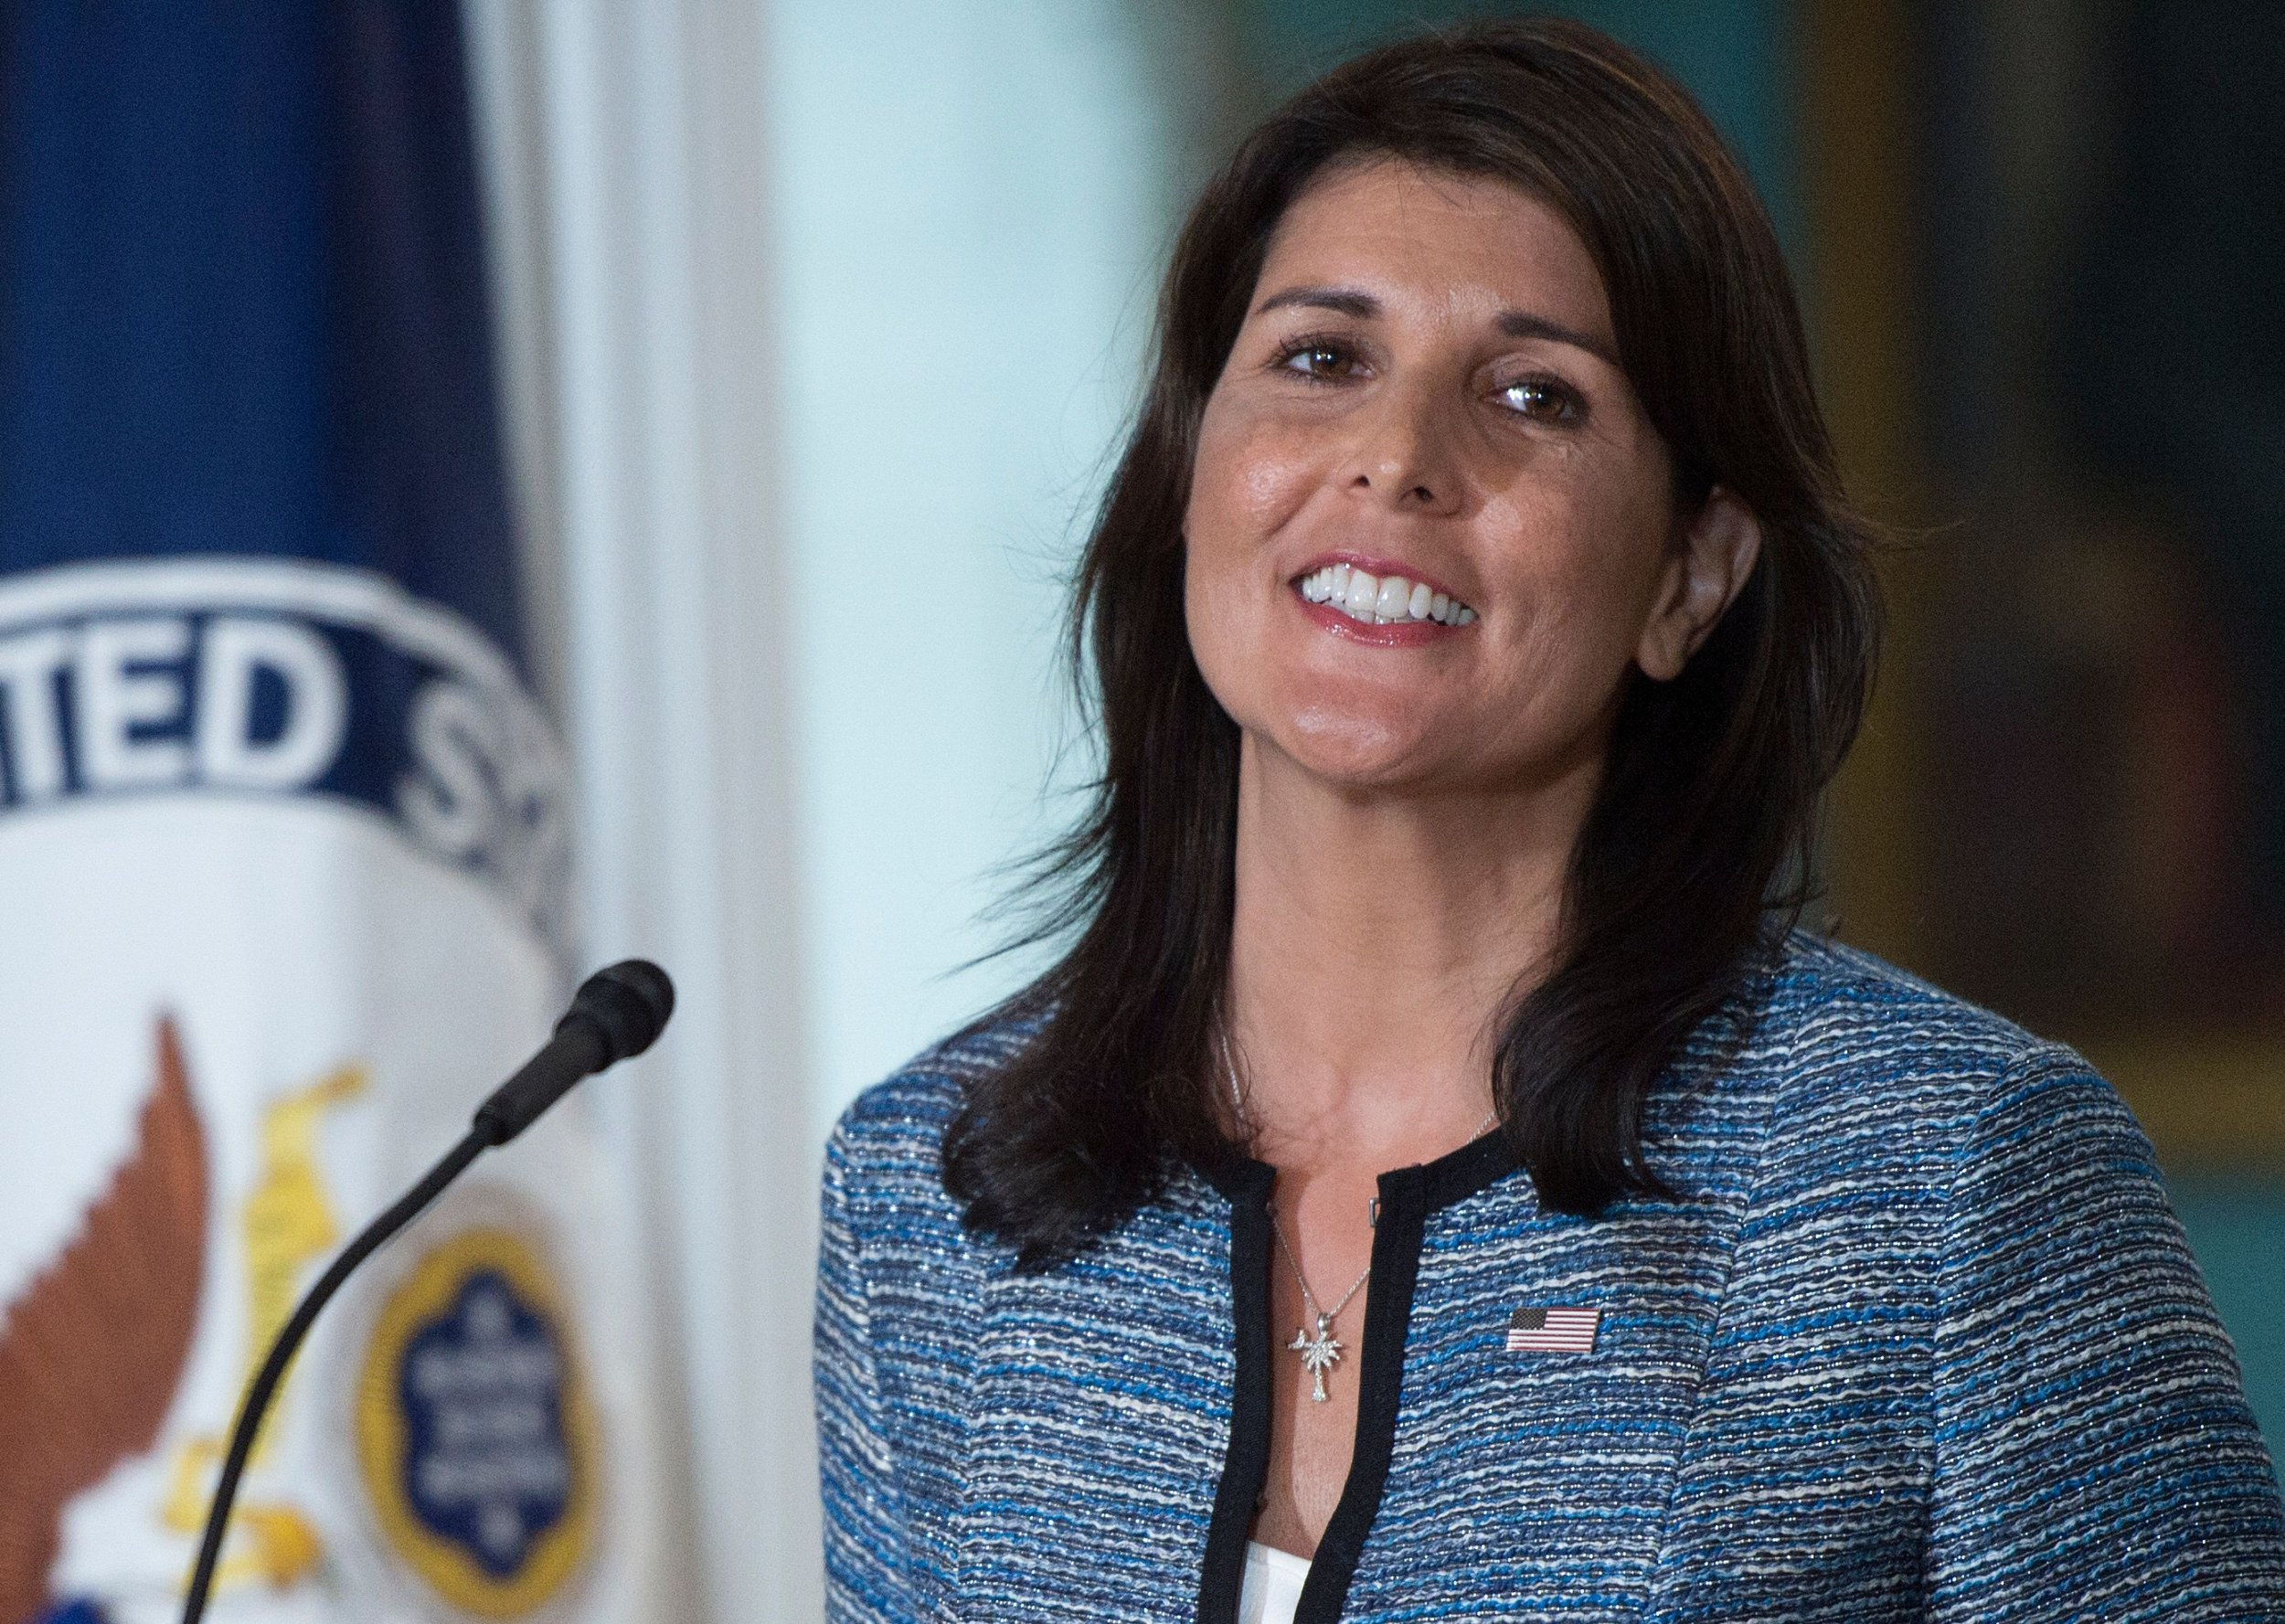 U.S. State Department Spent $52,701 on Nikki Haley's Curtains Amid Budget Cuts and Hiring Freeze: Report